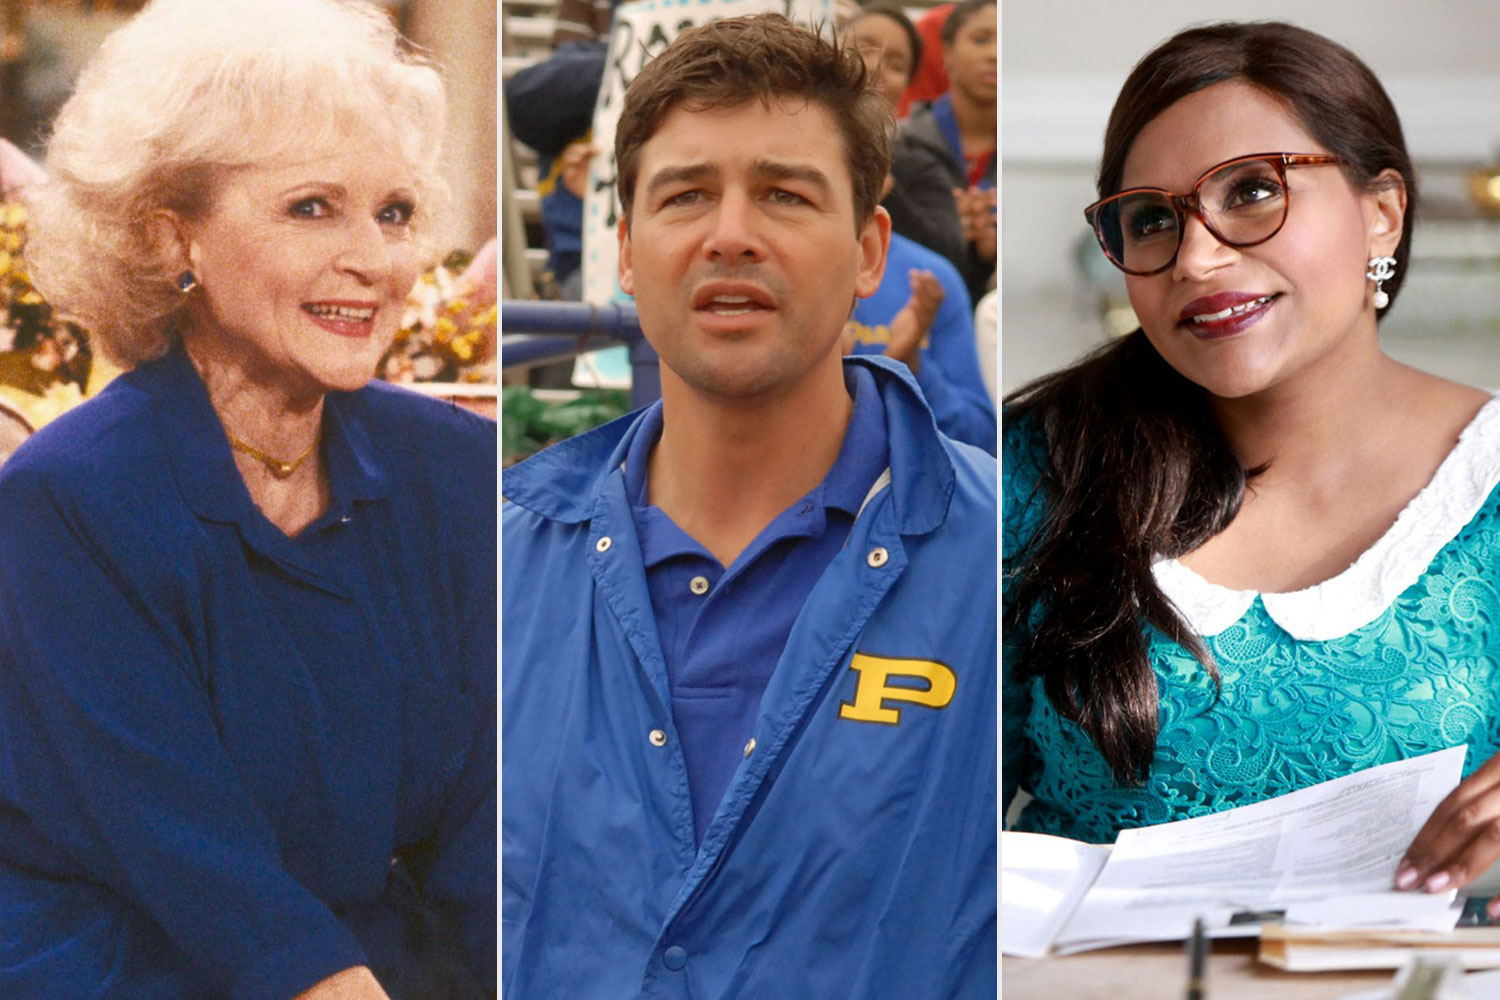 Golden Girls, Friday Night Lights, The Mindy Project